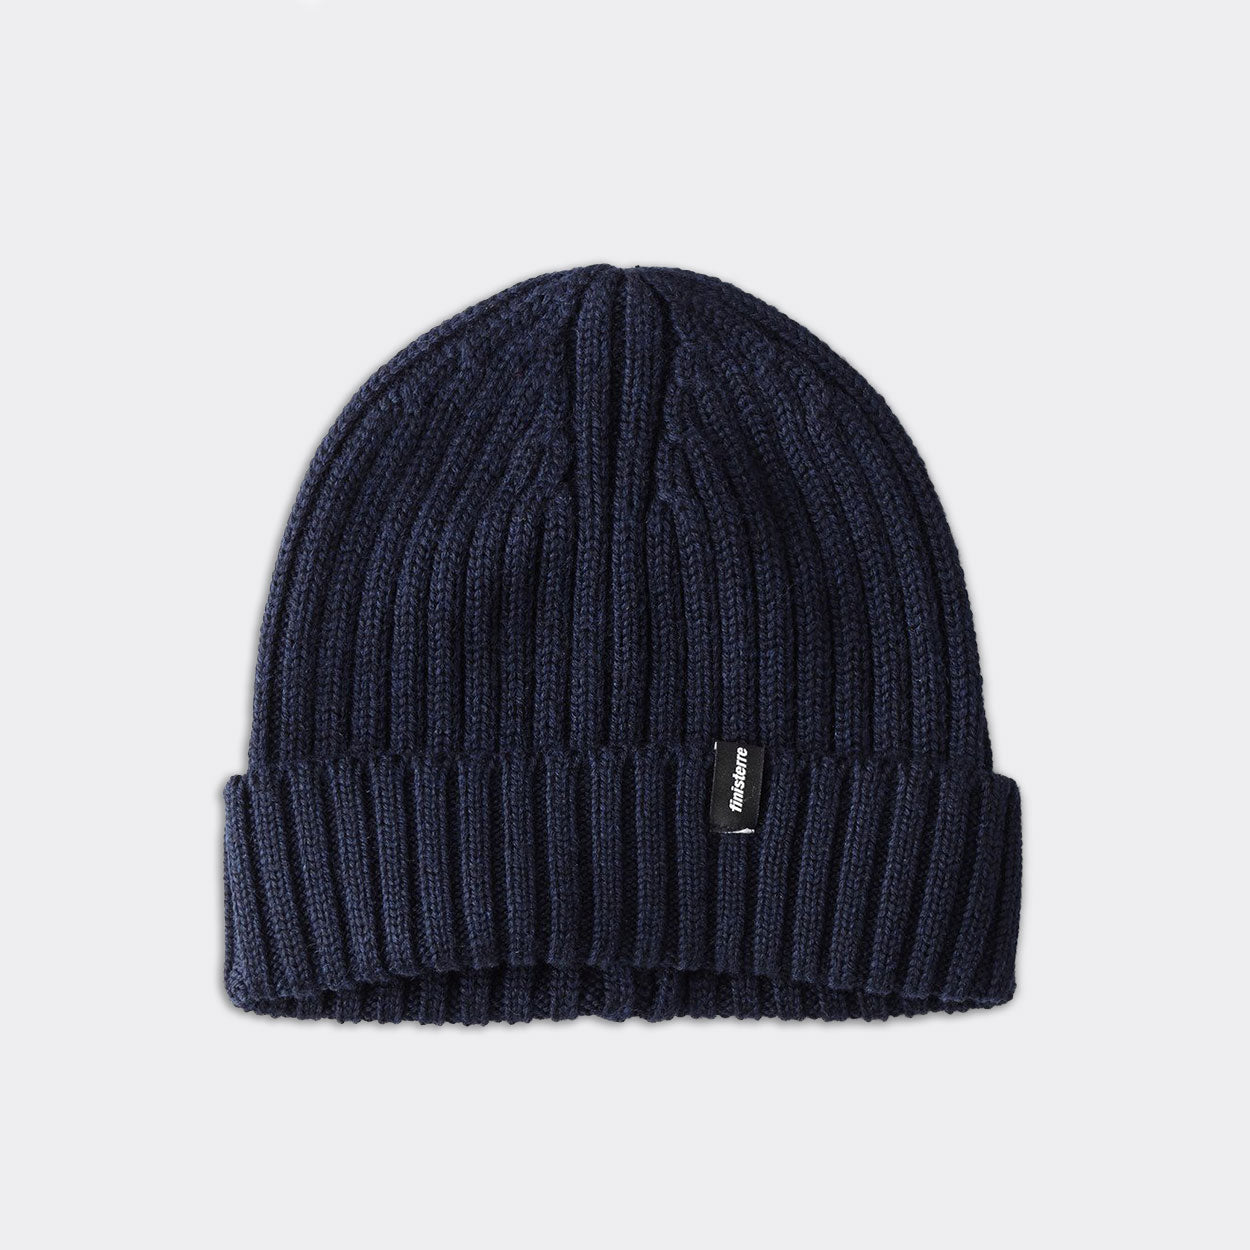 Finisterre Fisherman Beanie - Navy